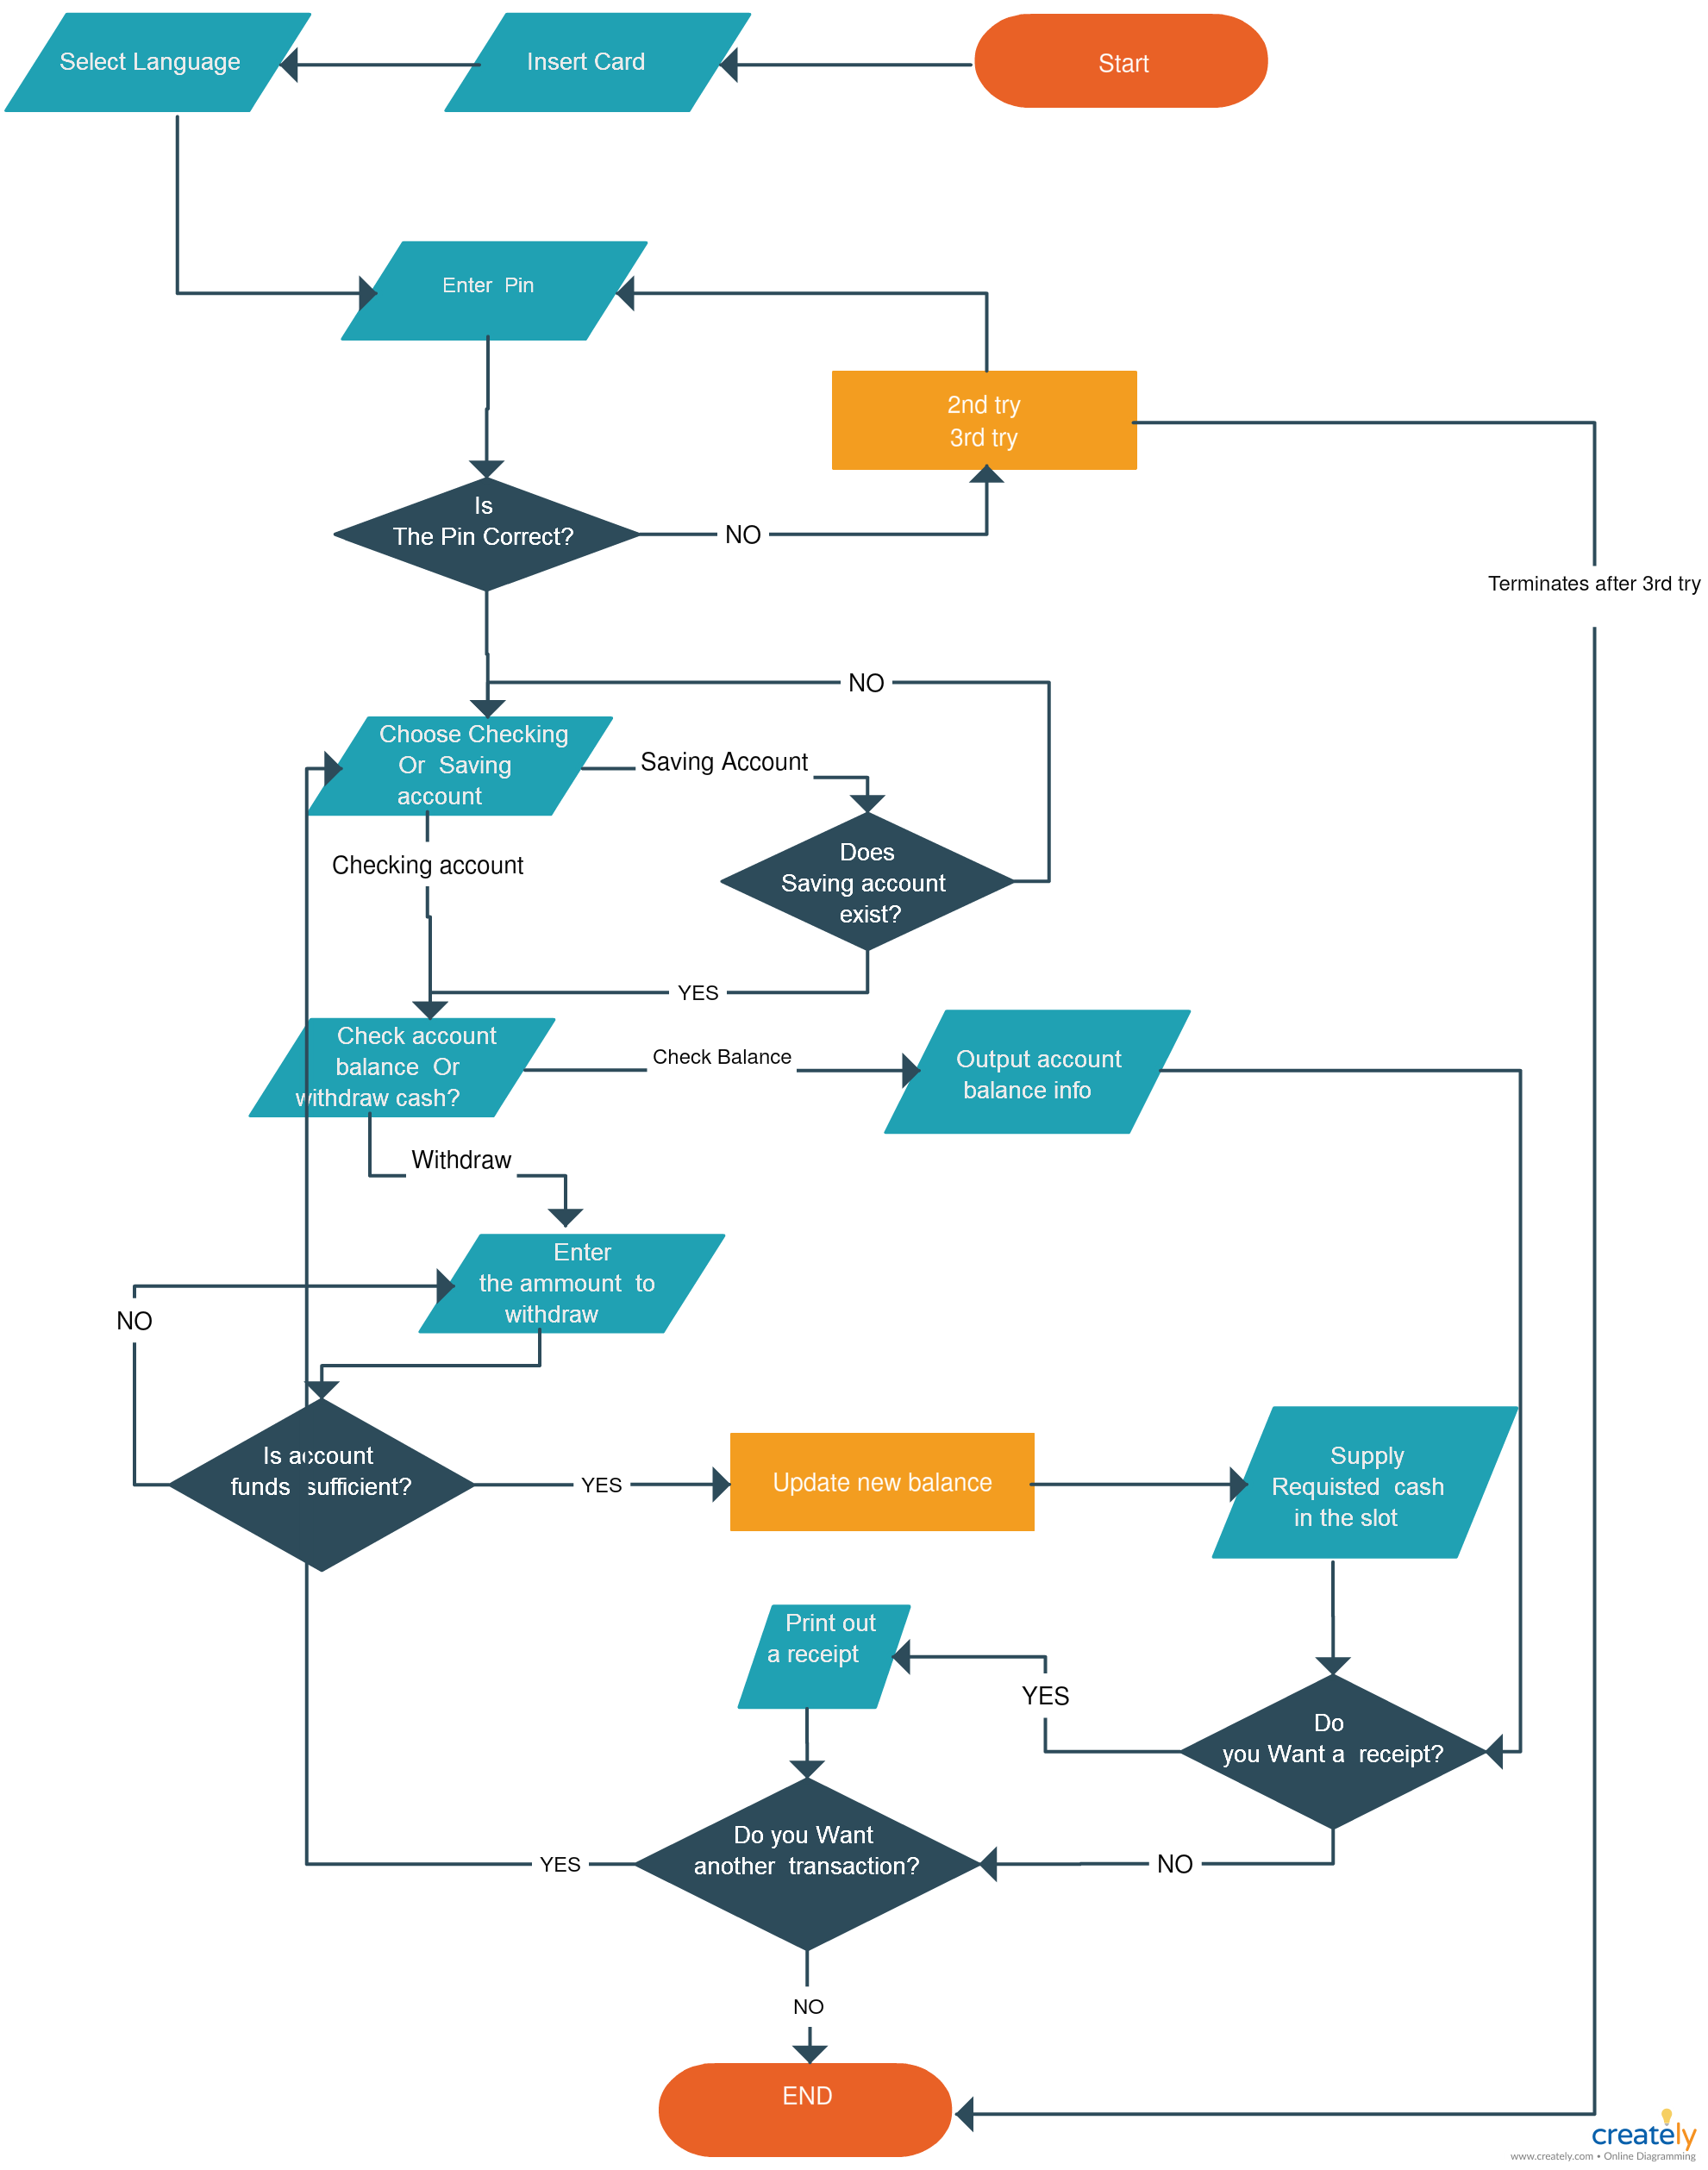 atm flowchart atm flowchart illustrating the process flow of an atm machine atm process flowchart diagram is a great way to layout each segment of the  [ 1981 x 2517 Pixel ]